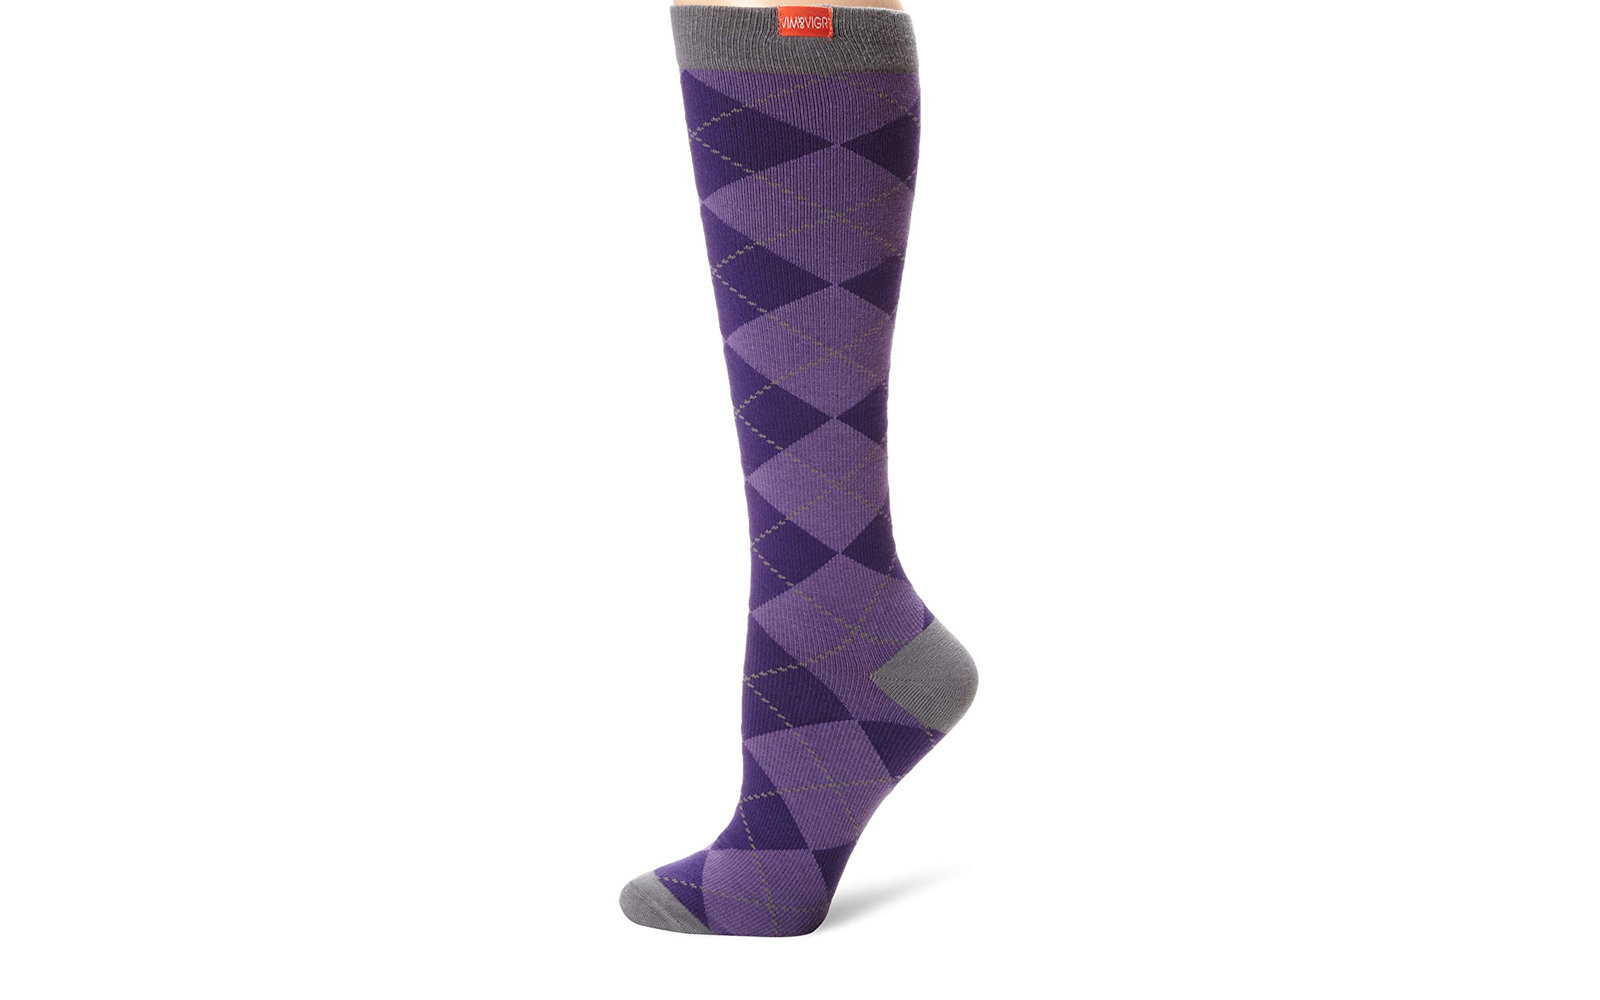 Amazon, VIM & VIGR Stylish Compression Socks, Best Gifts for Business Travelers